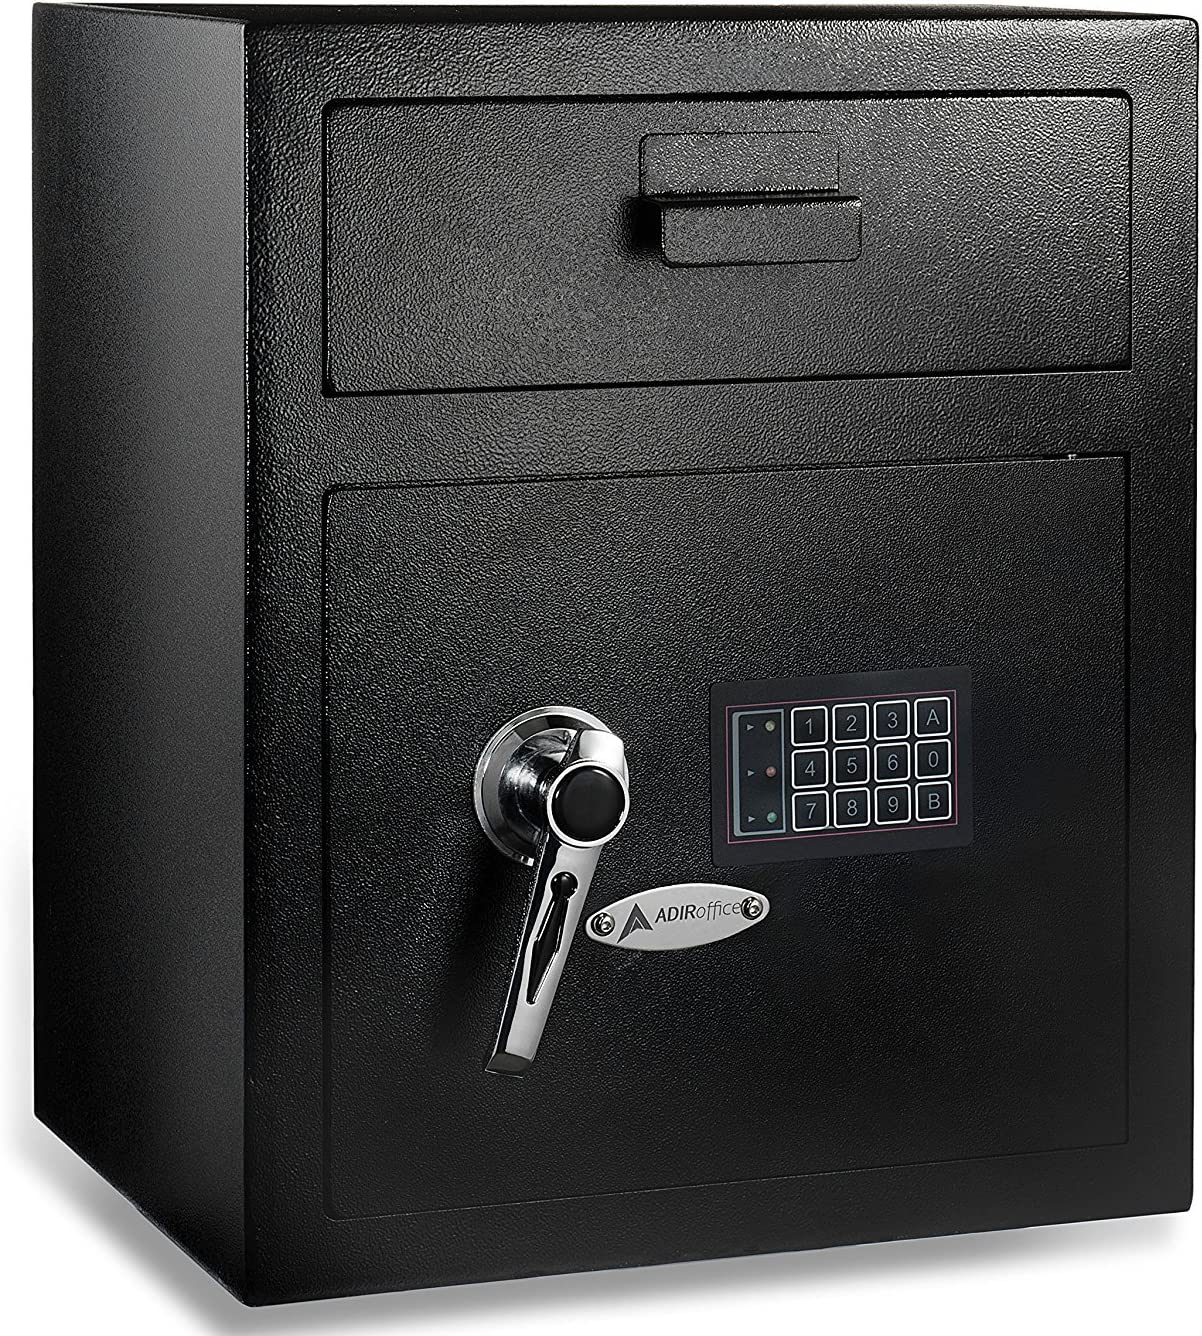 AdirOffice Digital Depository Safe - Front Loading - Digital Keypad Lock - Lockout Mode (Black)